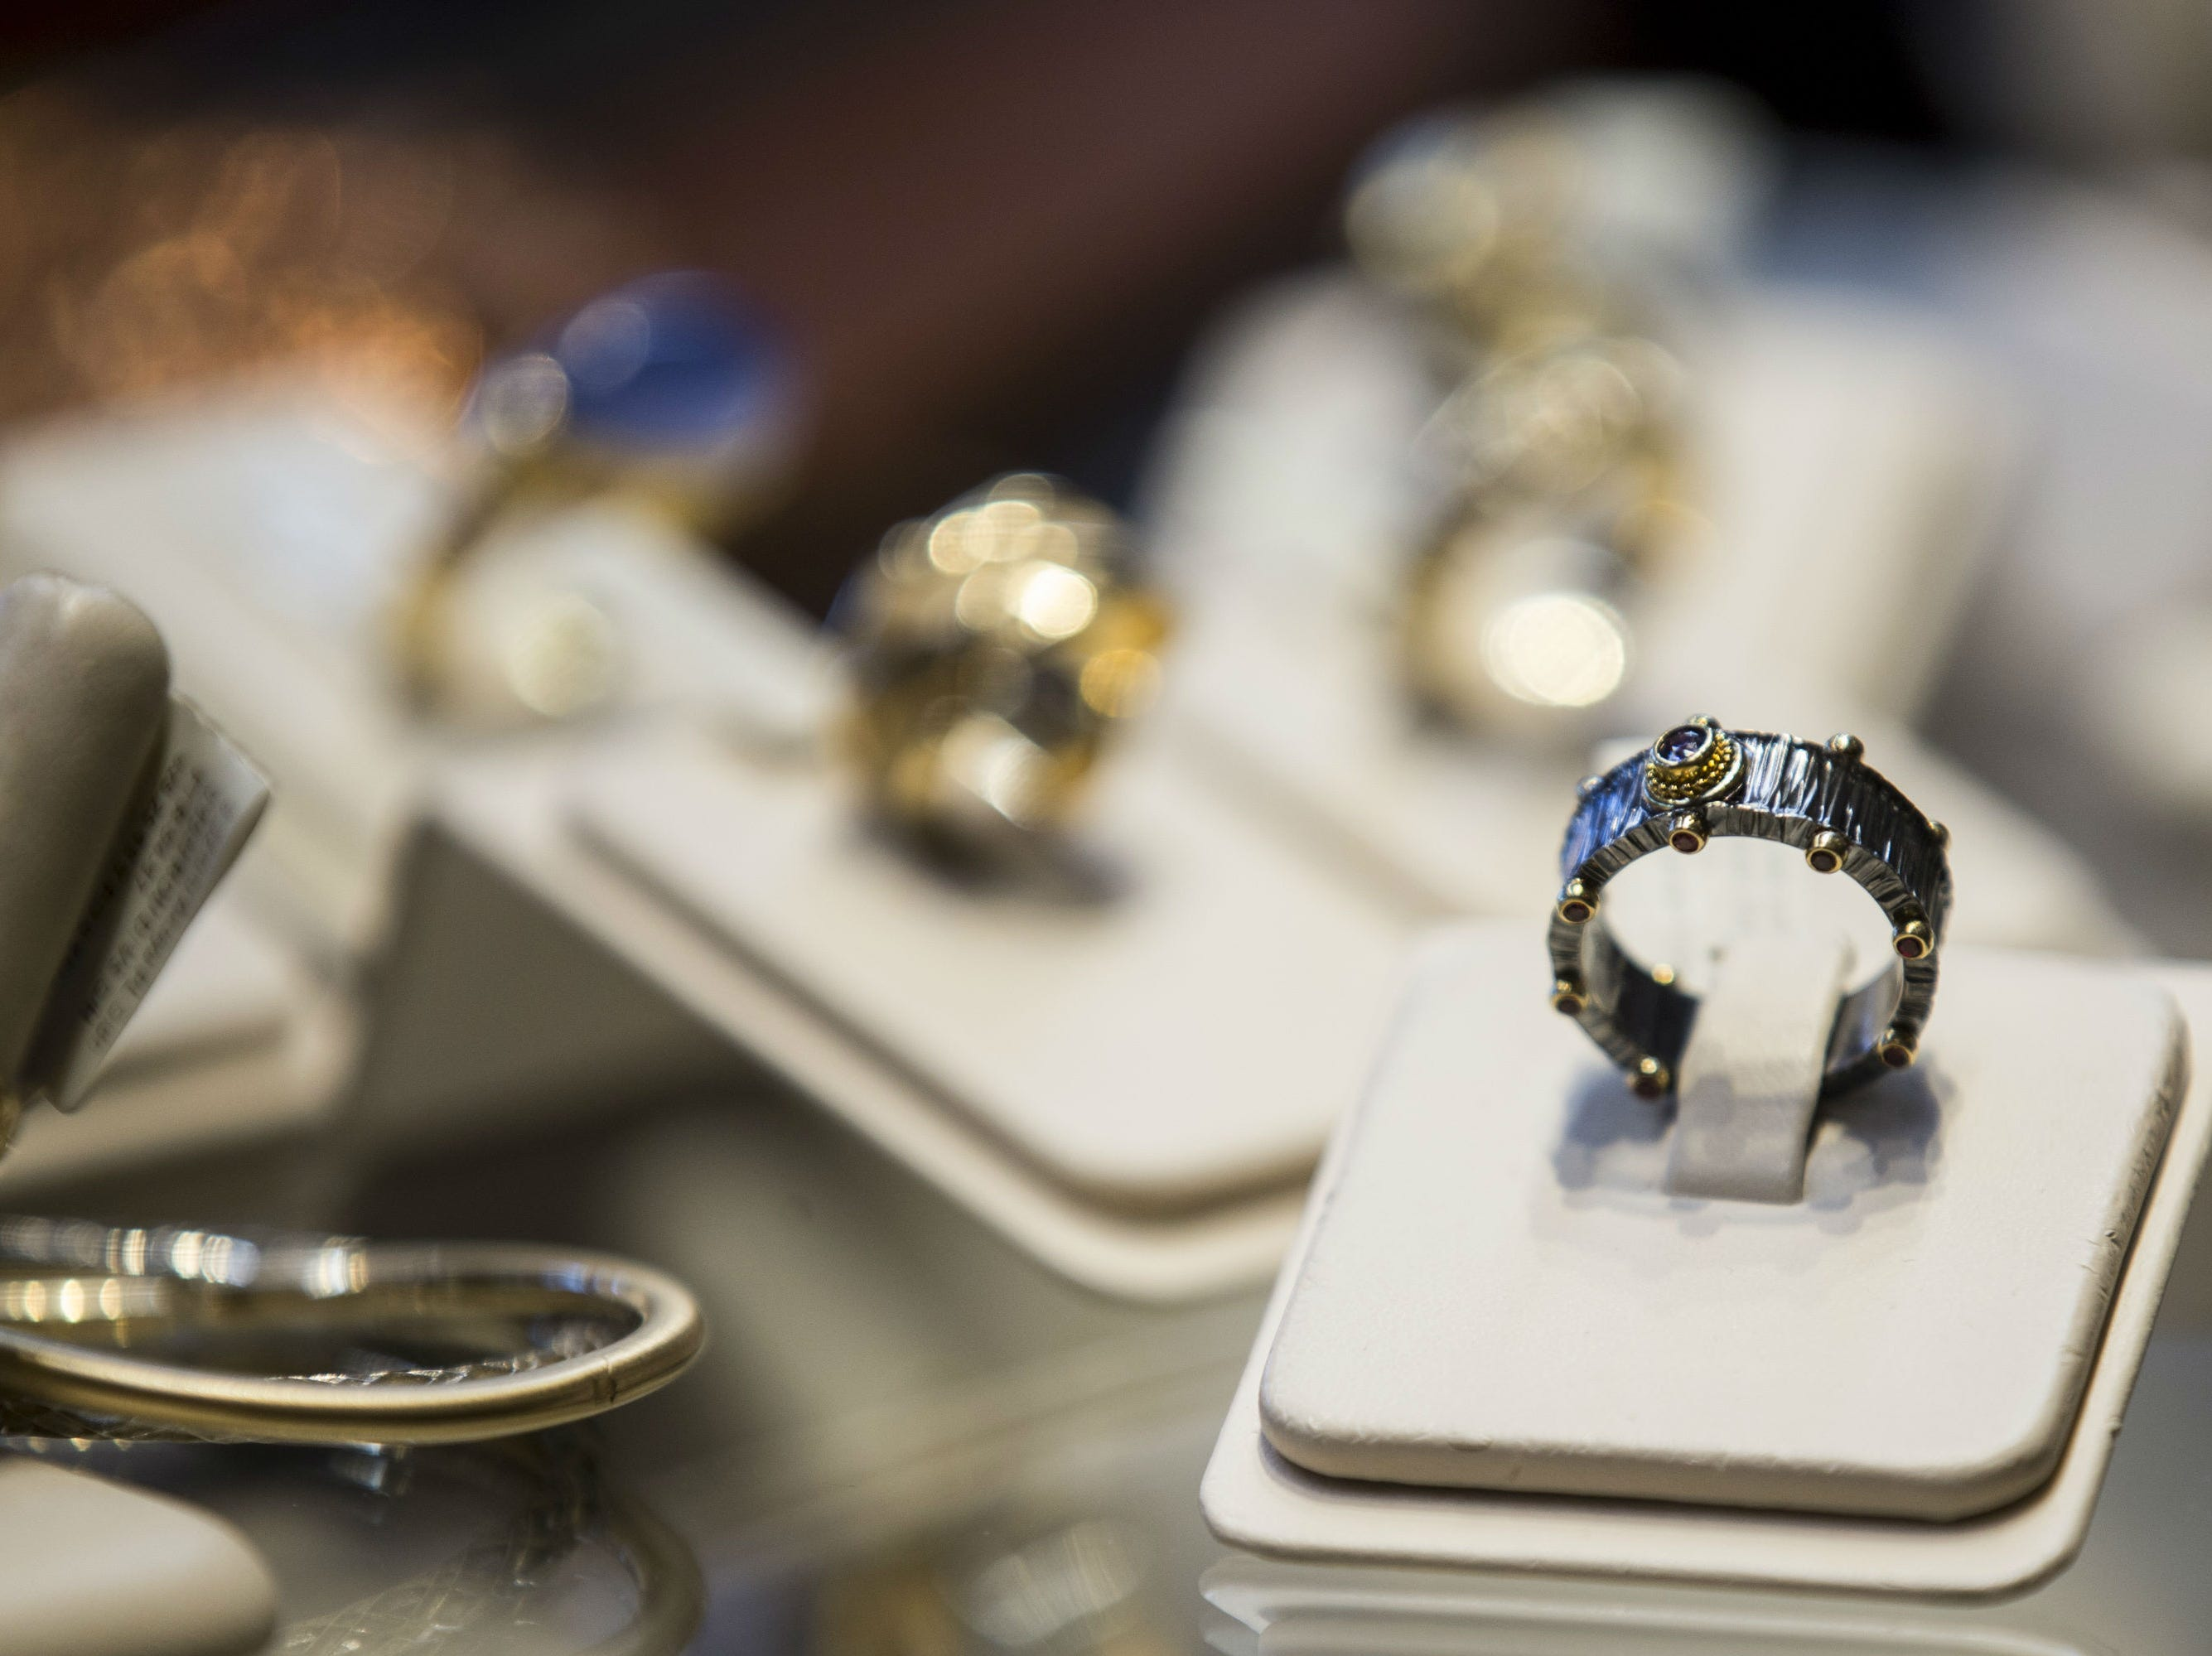 French Designer Jeweler in Scottsdale features custom jewelry and art from artists around the world.